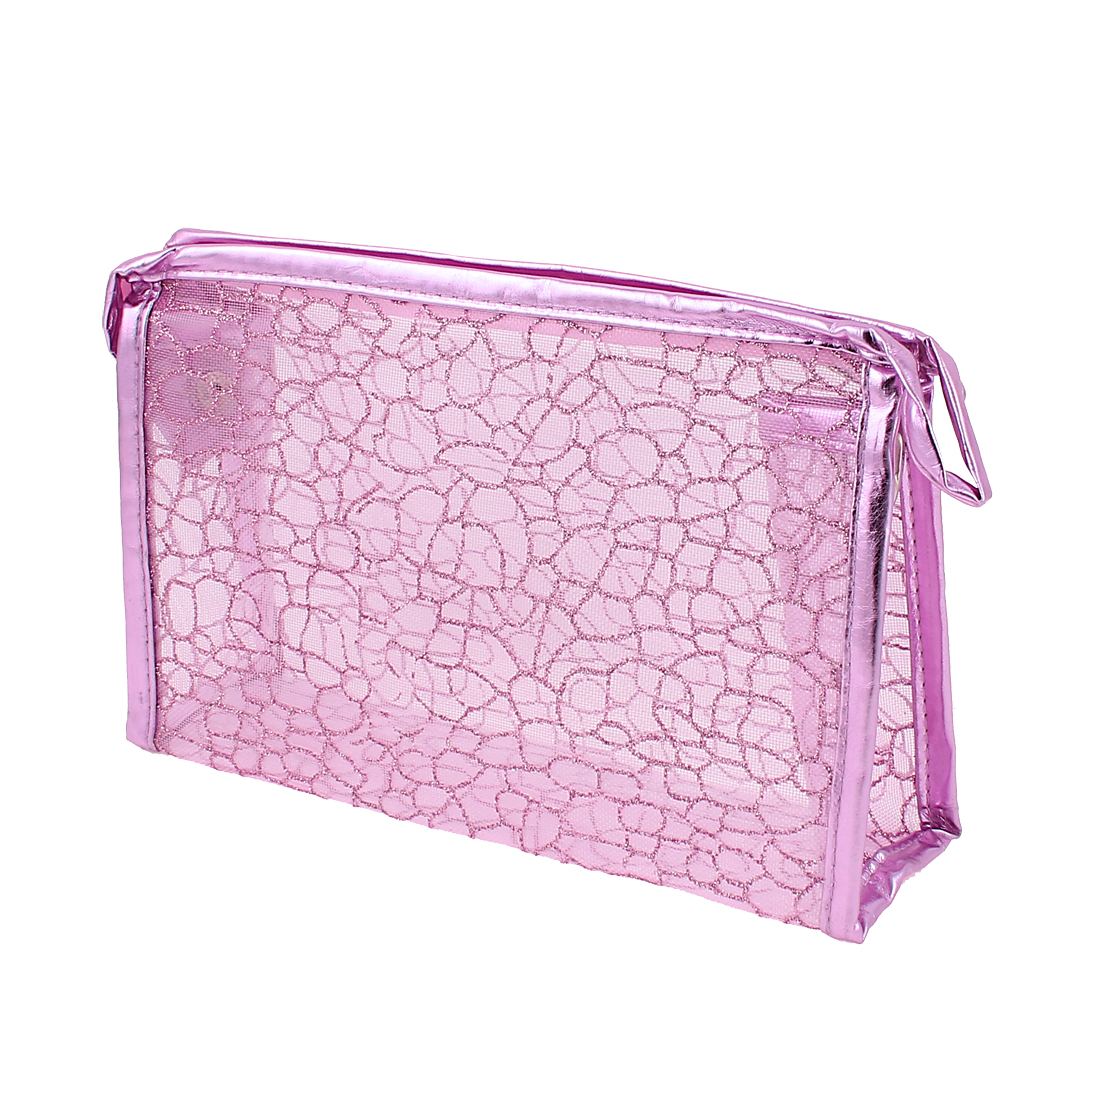 Lady Waterproof Makeup Cosmetic Bag Handbag Organizer Pink